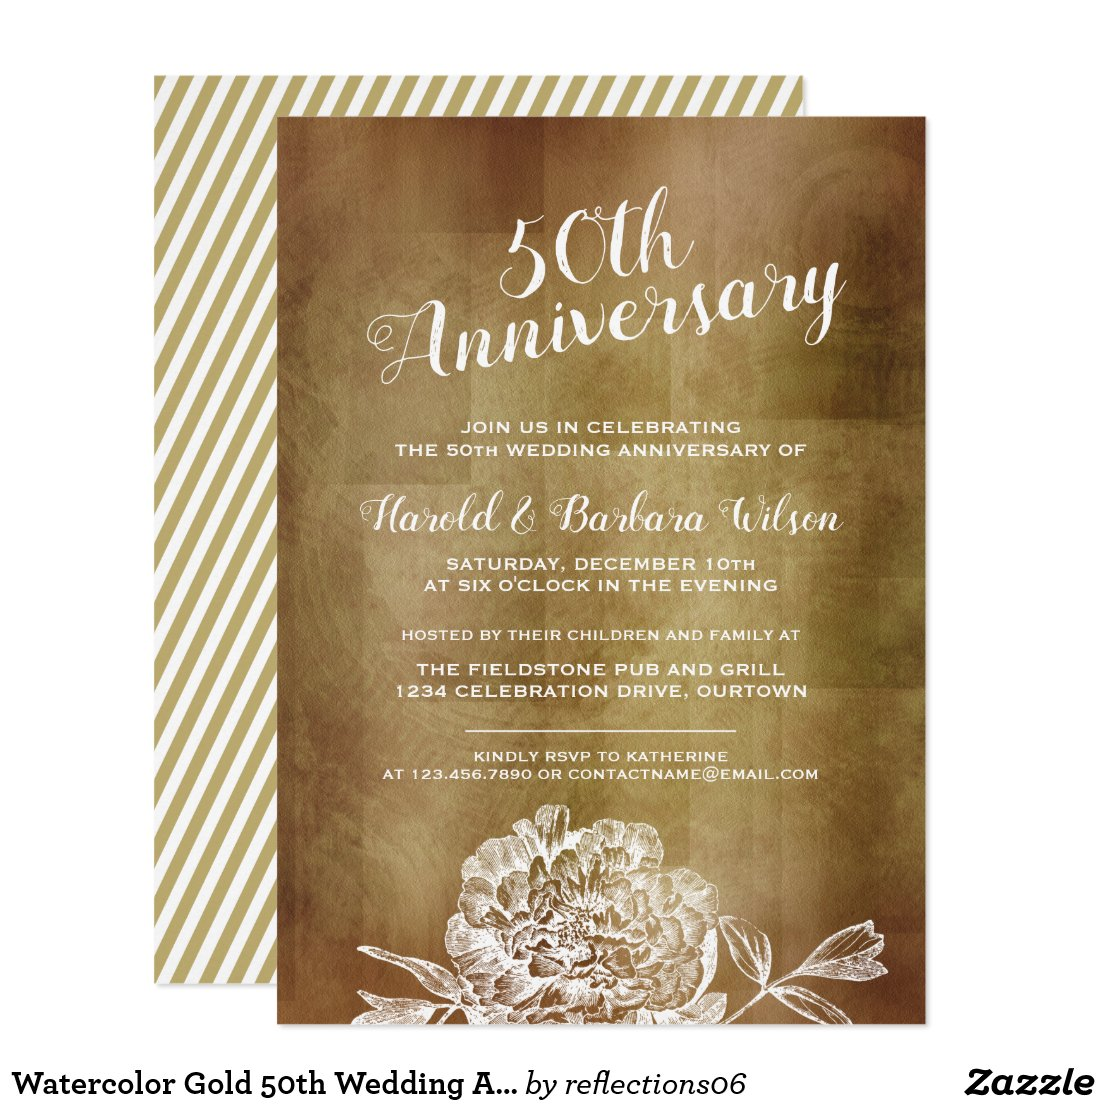 Watercolor Gold 50th Wedding Anniversary Party Invitation